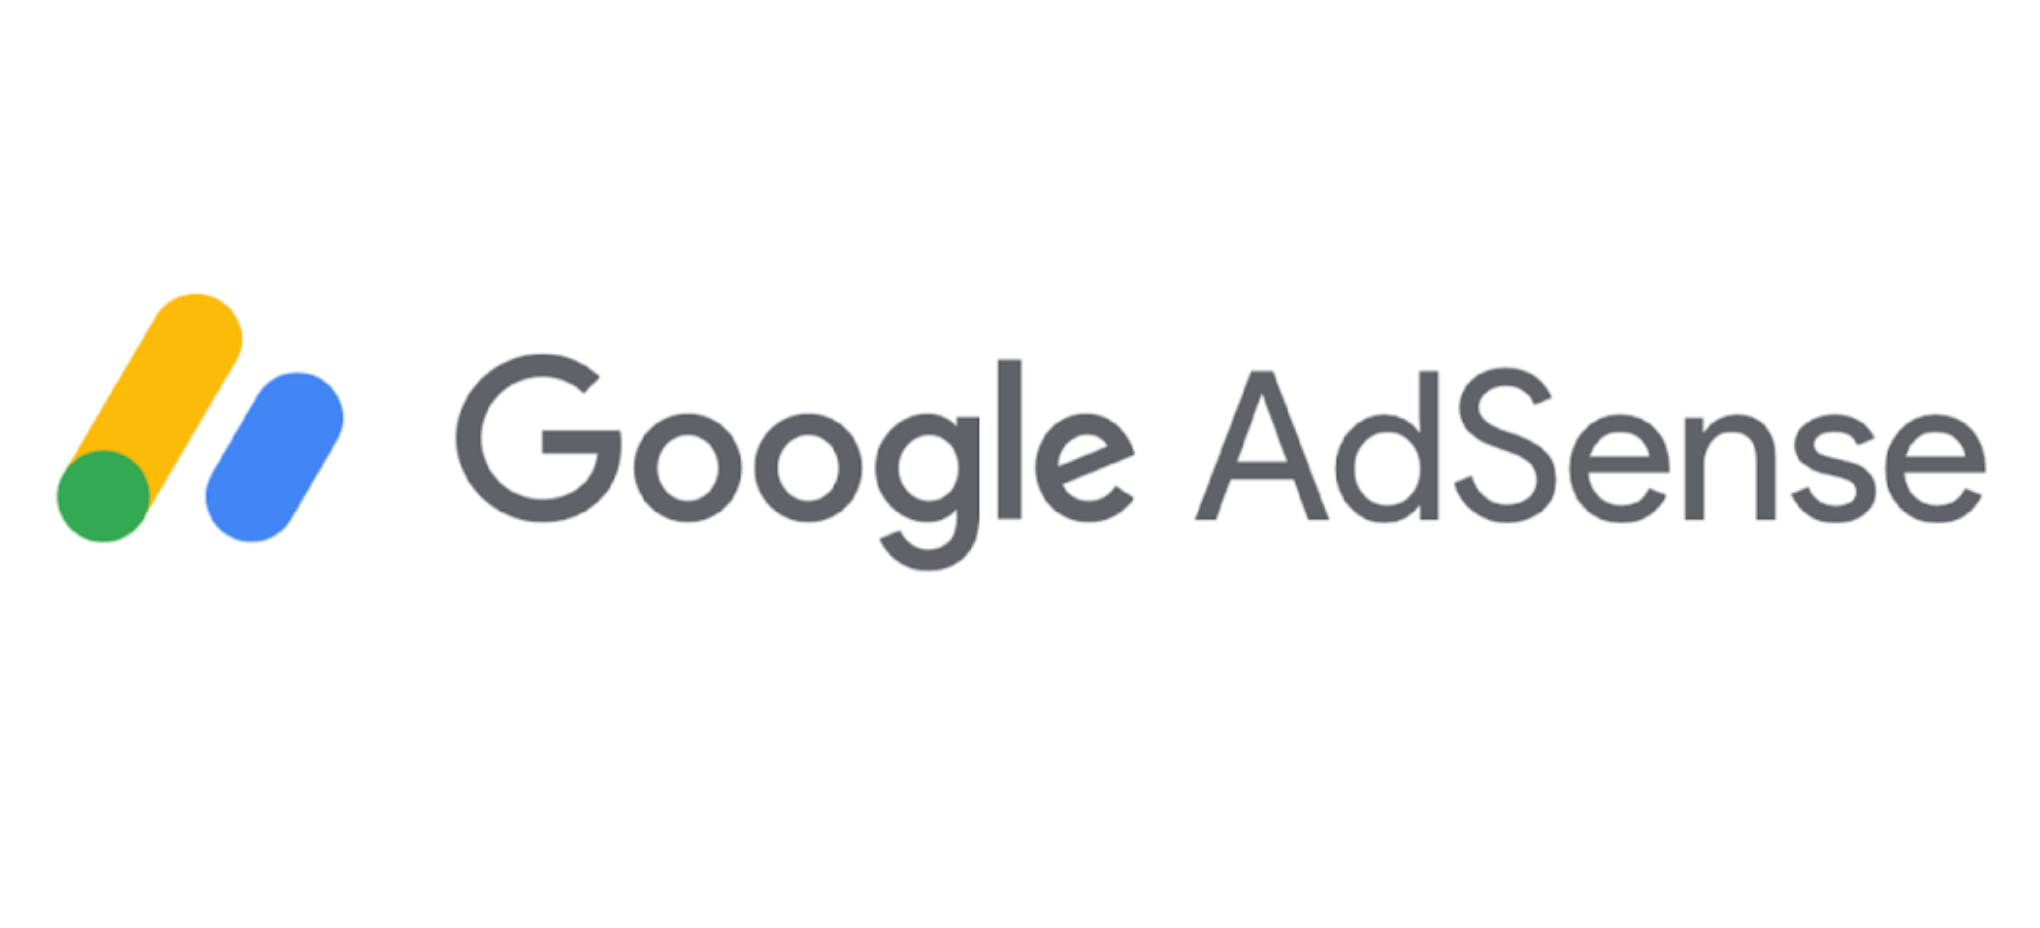 How to Earn Money with Google Adsense. My Step-by-Step